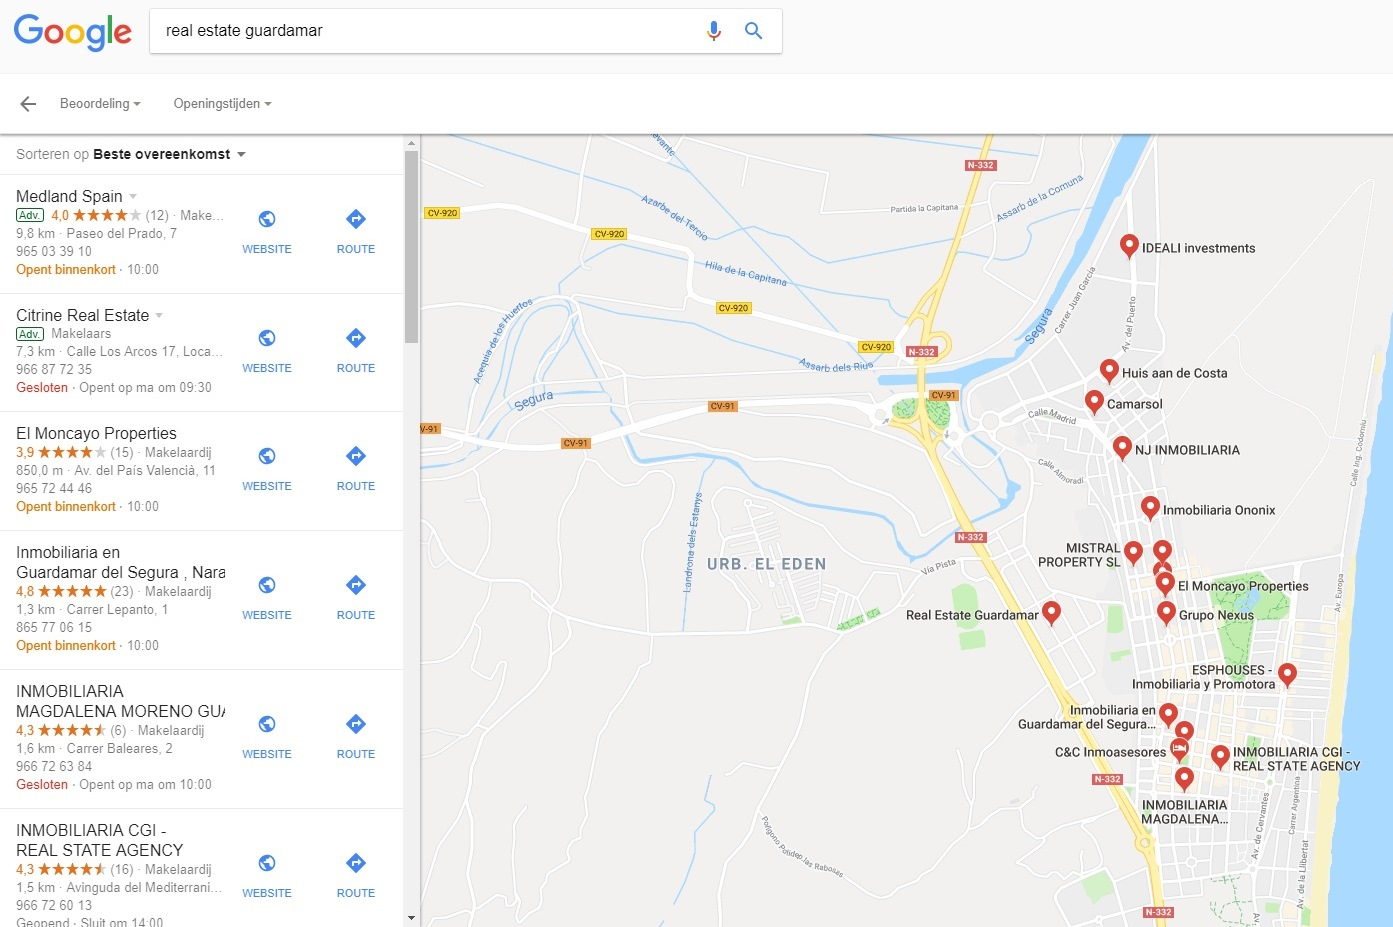 Vindbaarheid in Google-zoekresultaat-real-estate-guardamar-jpg